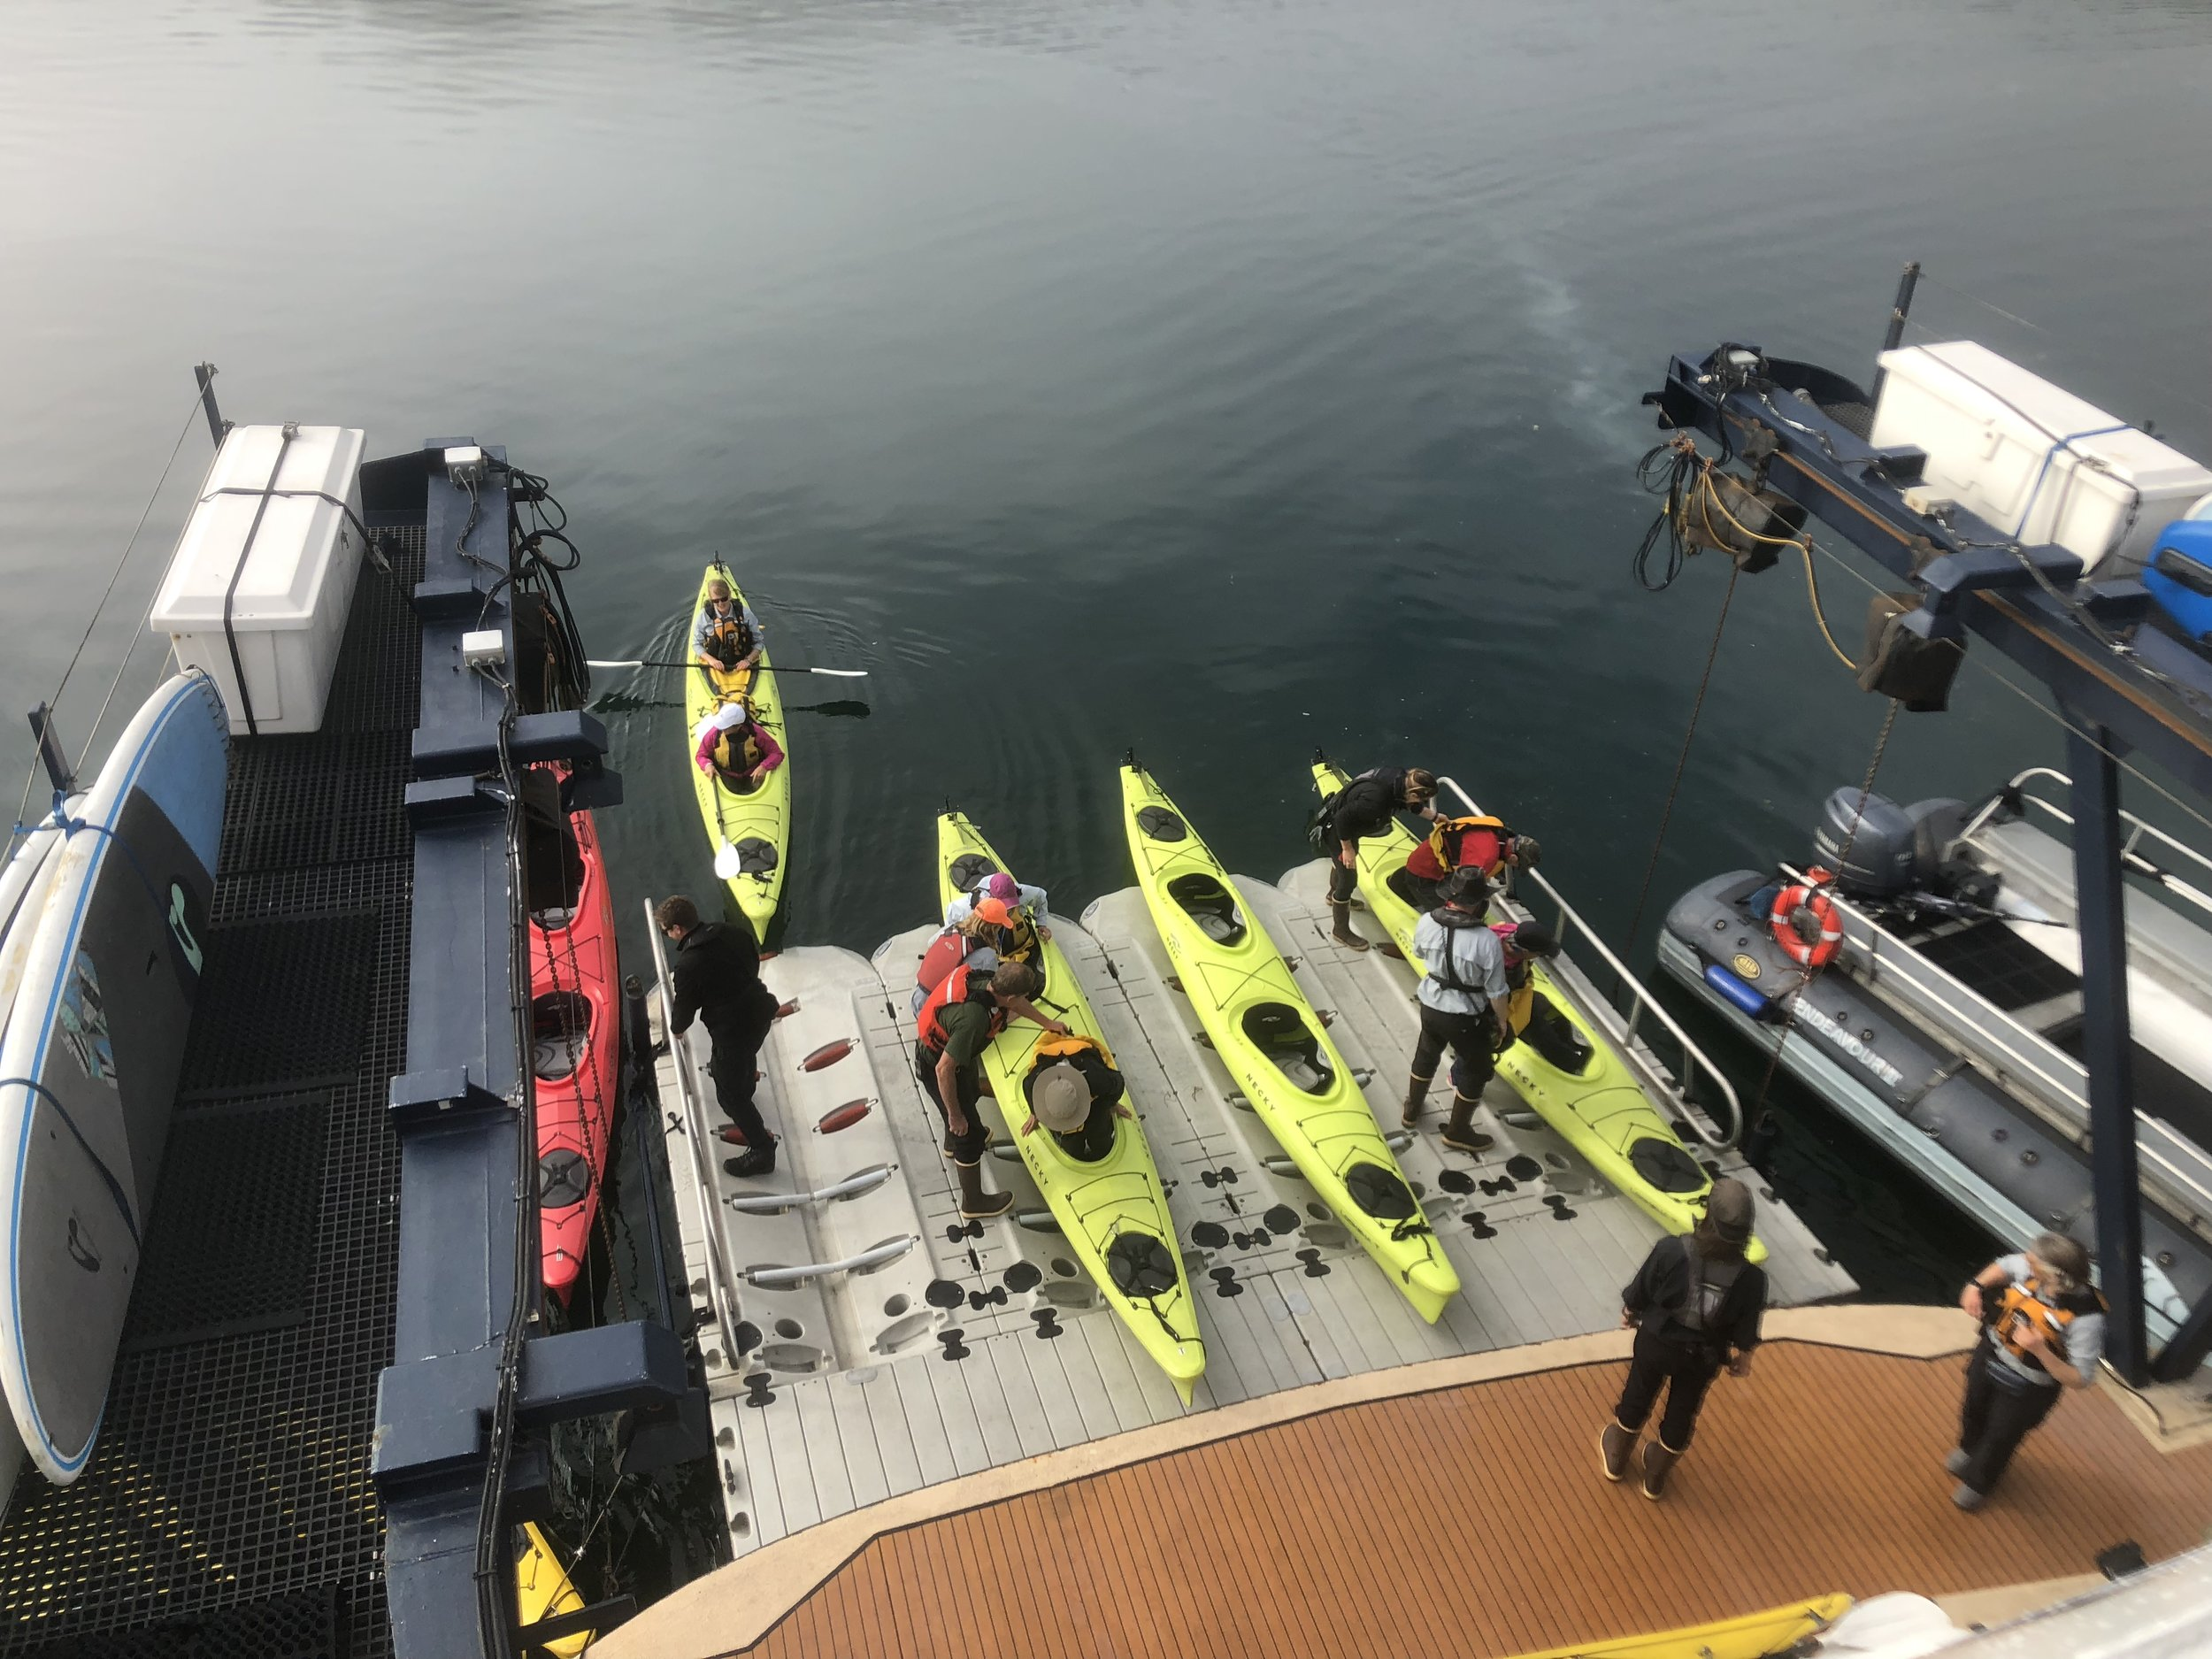 The platform for launching kayaks, paddle boards and skiffs